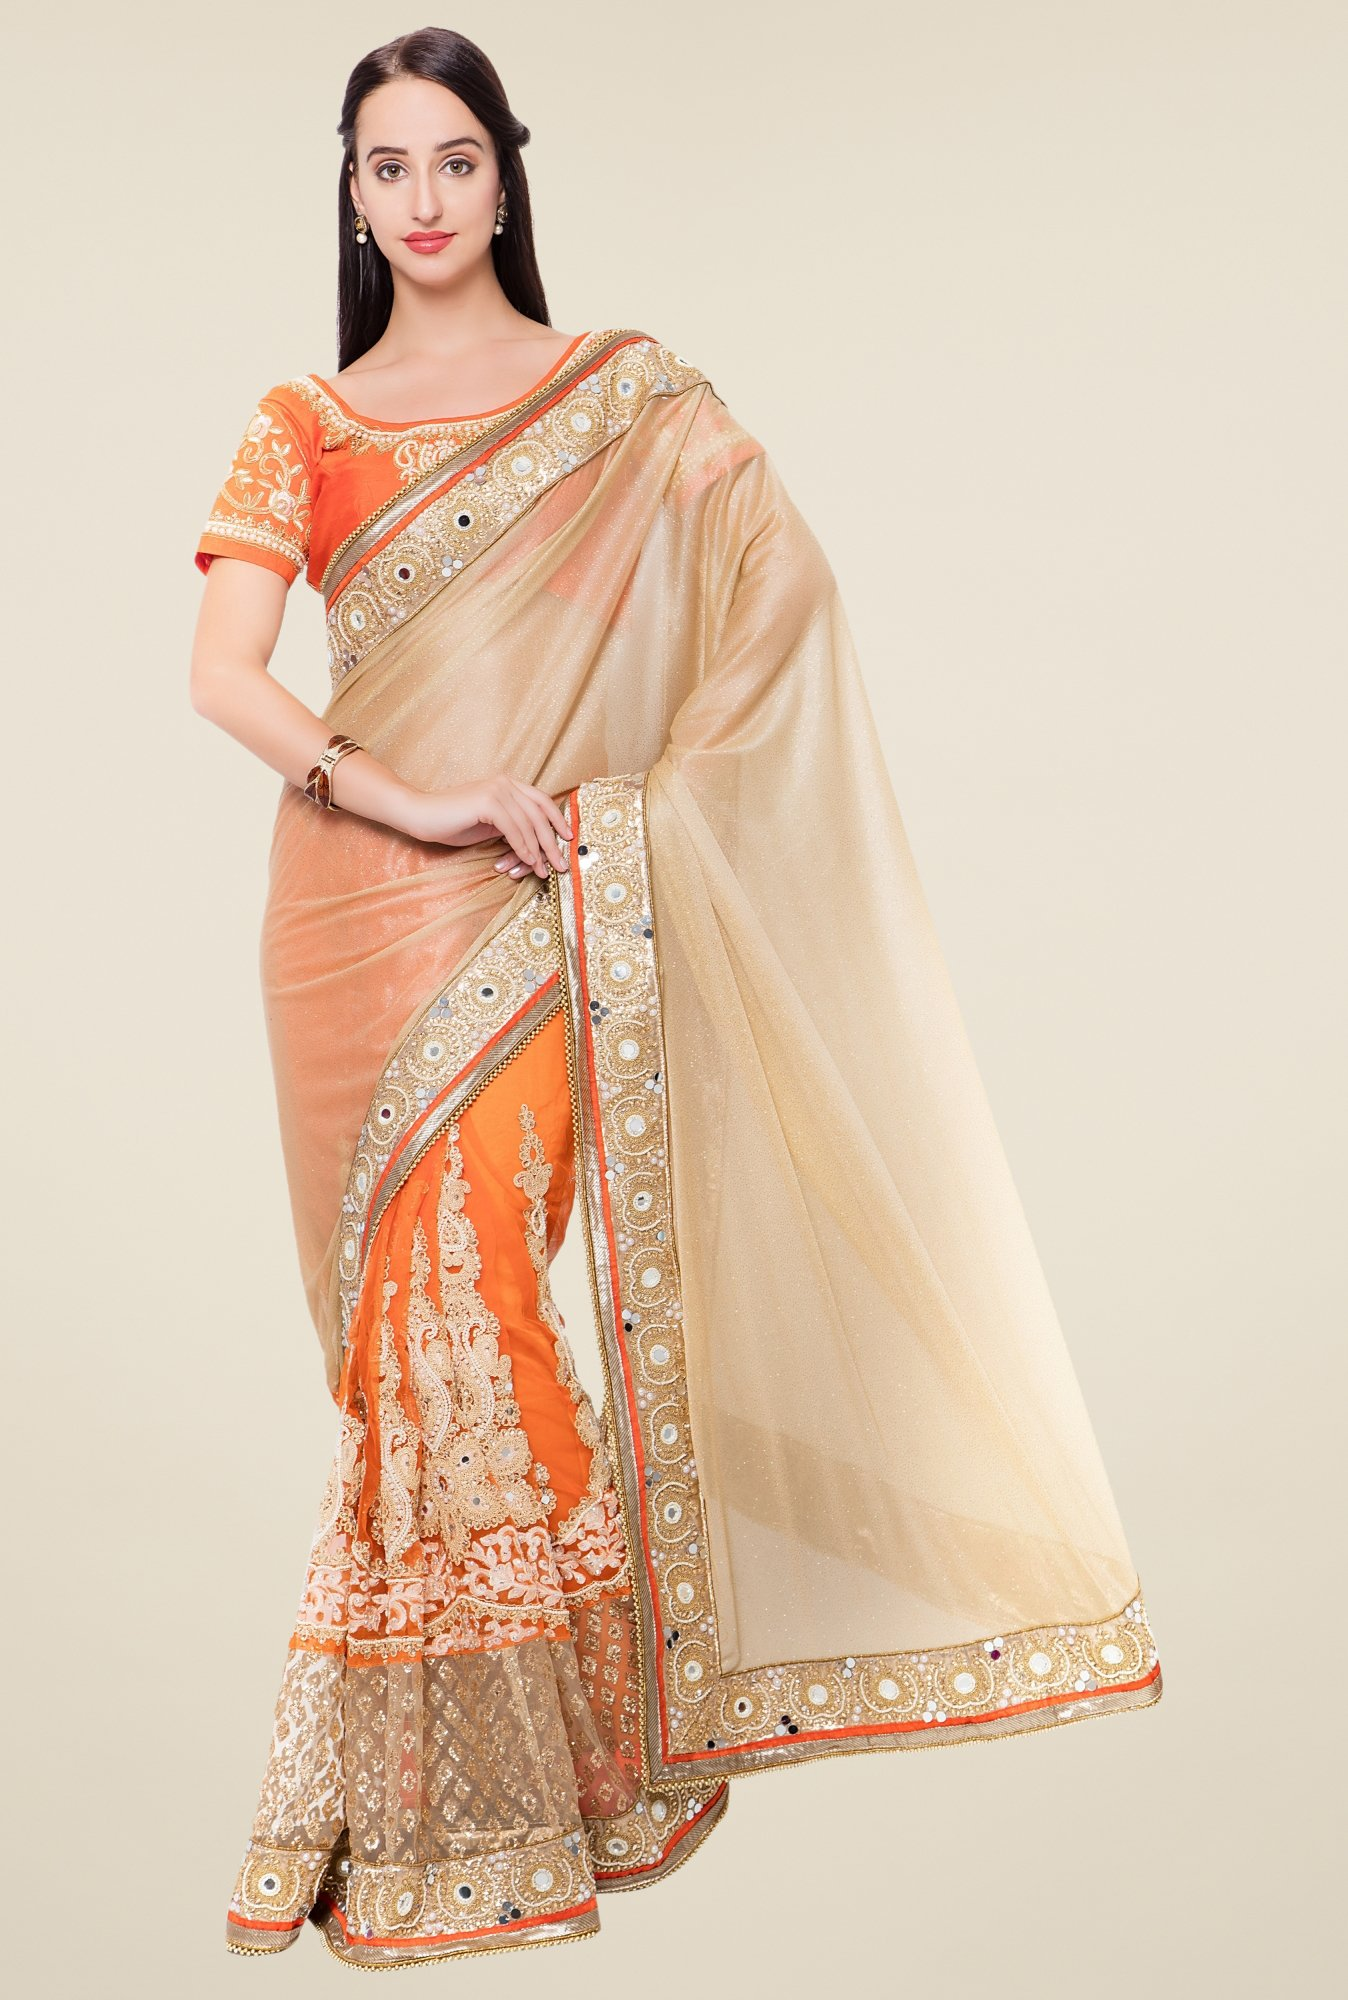 Triveni Orange & Beige Embroidered Lycra Saree